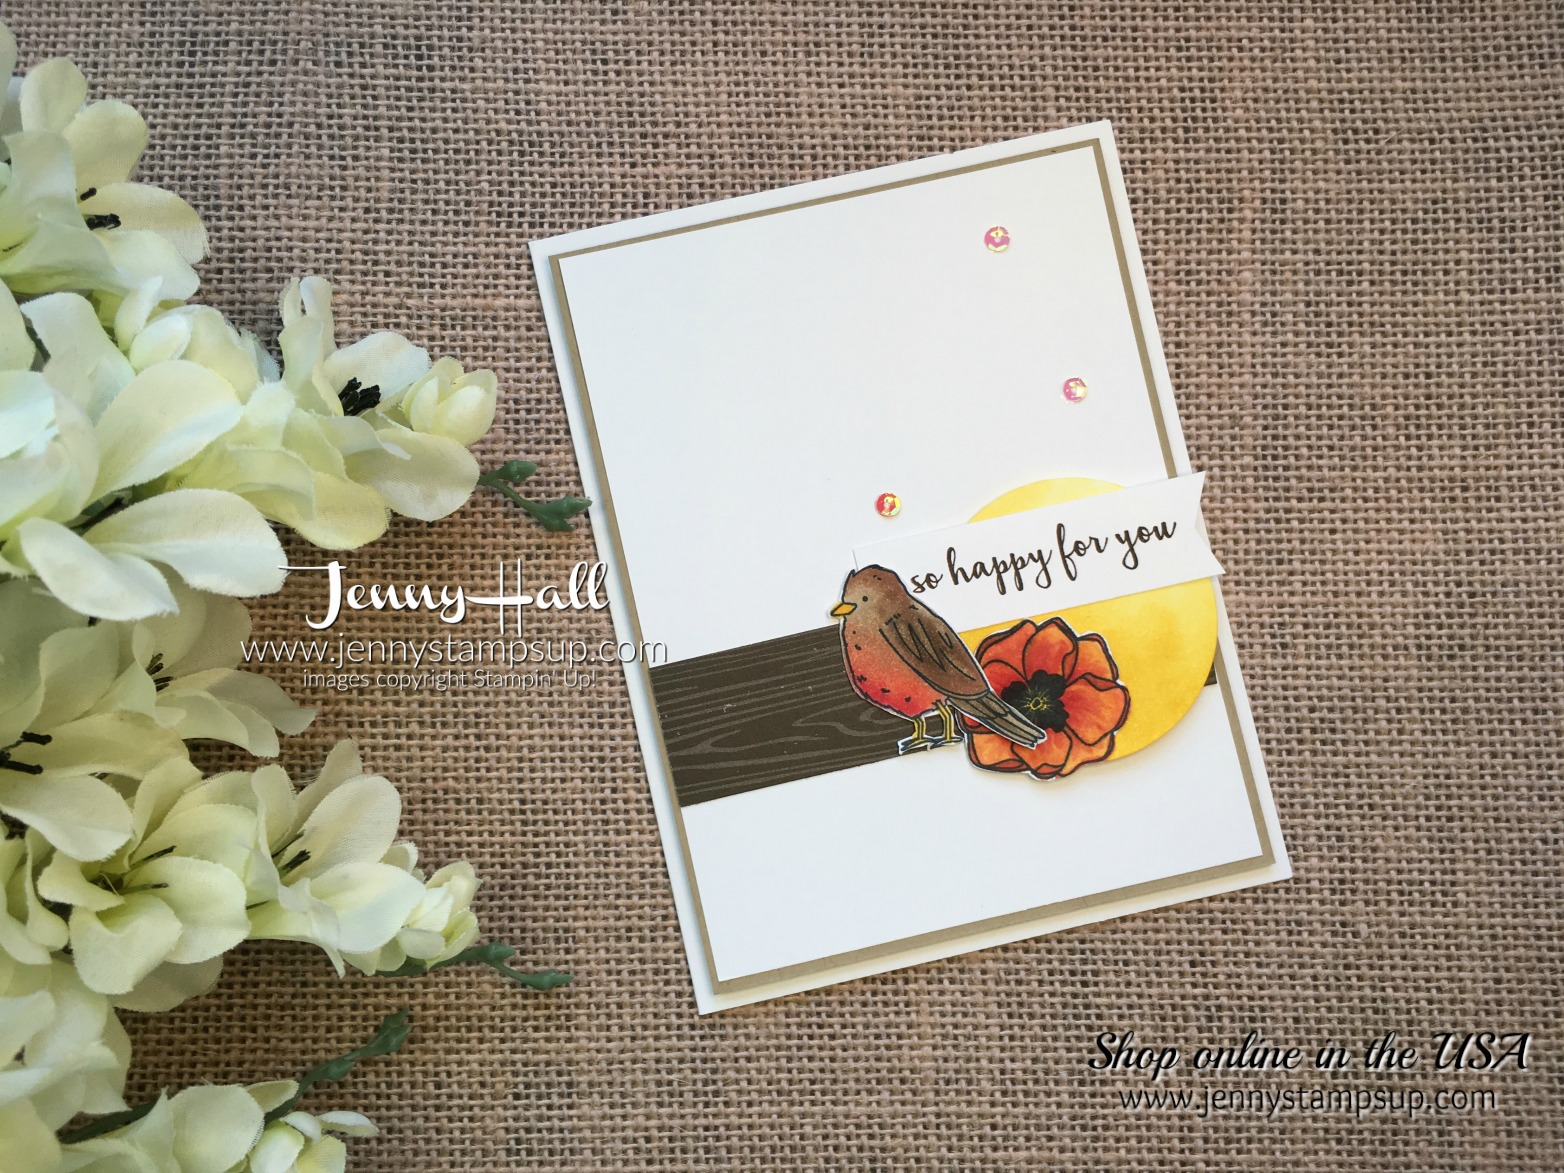 Color Me Happy robin card by Jenny Hall at www.jennystampsup.com for cardmaking, video tutorials, scrapbooking, papercraft gift giving and more!